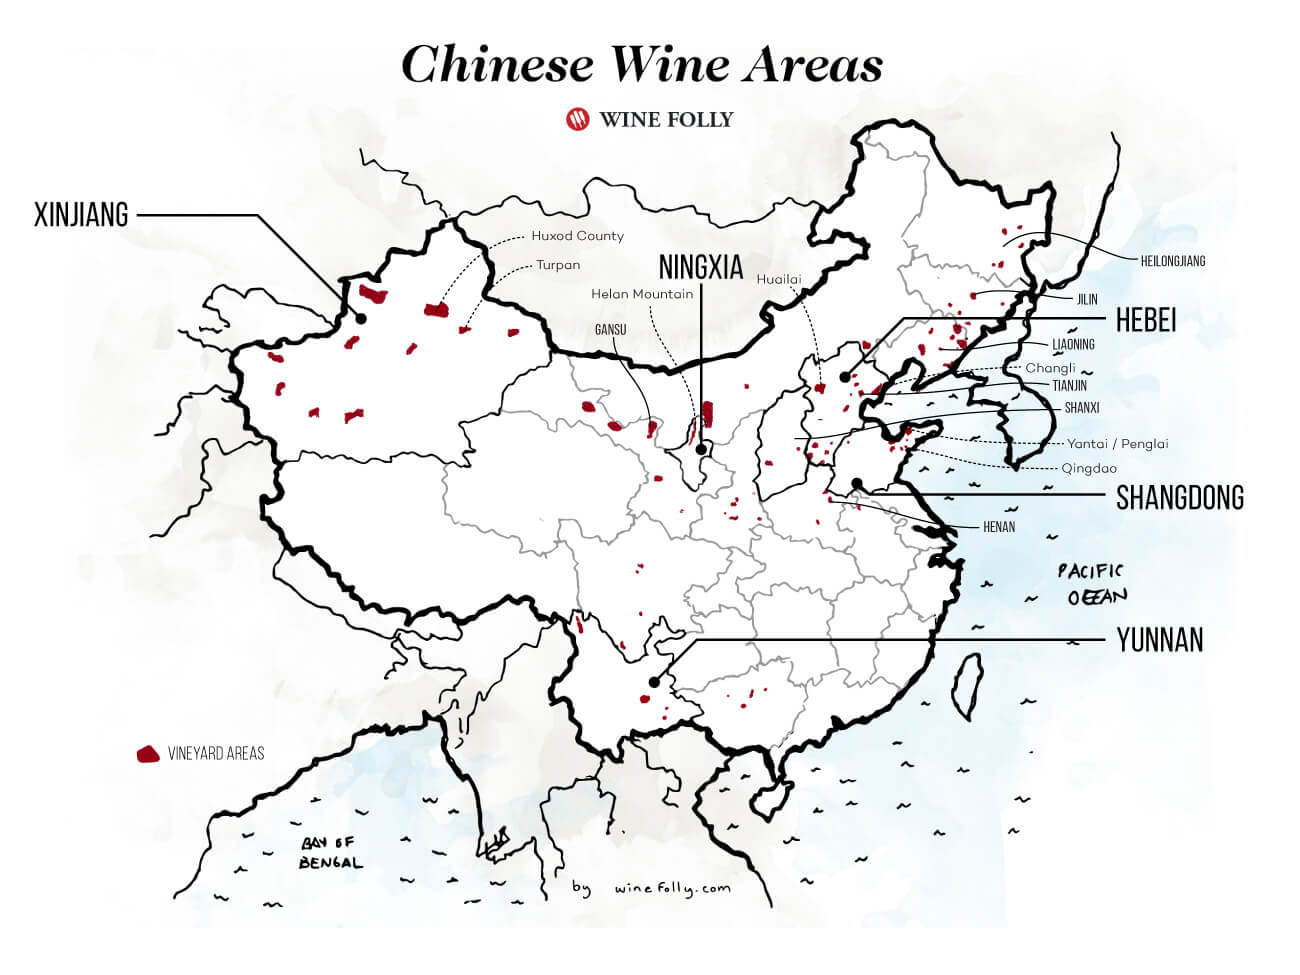 China Wine Region Map Detail - By Wine Folly 2020